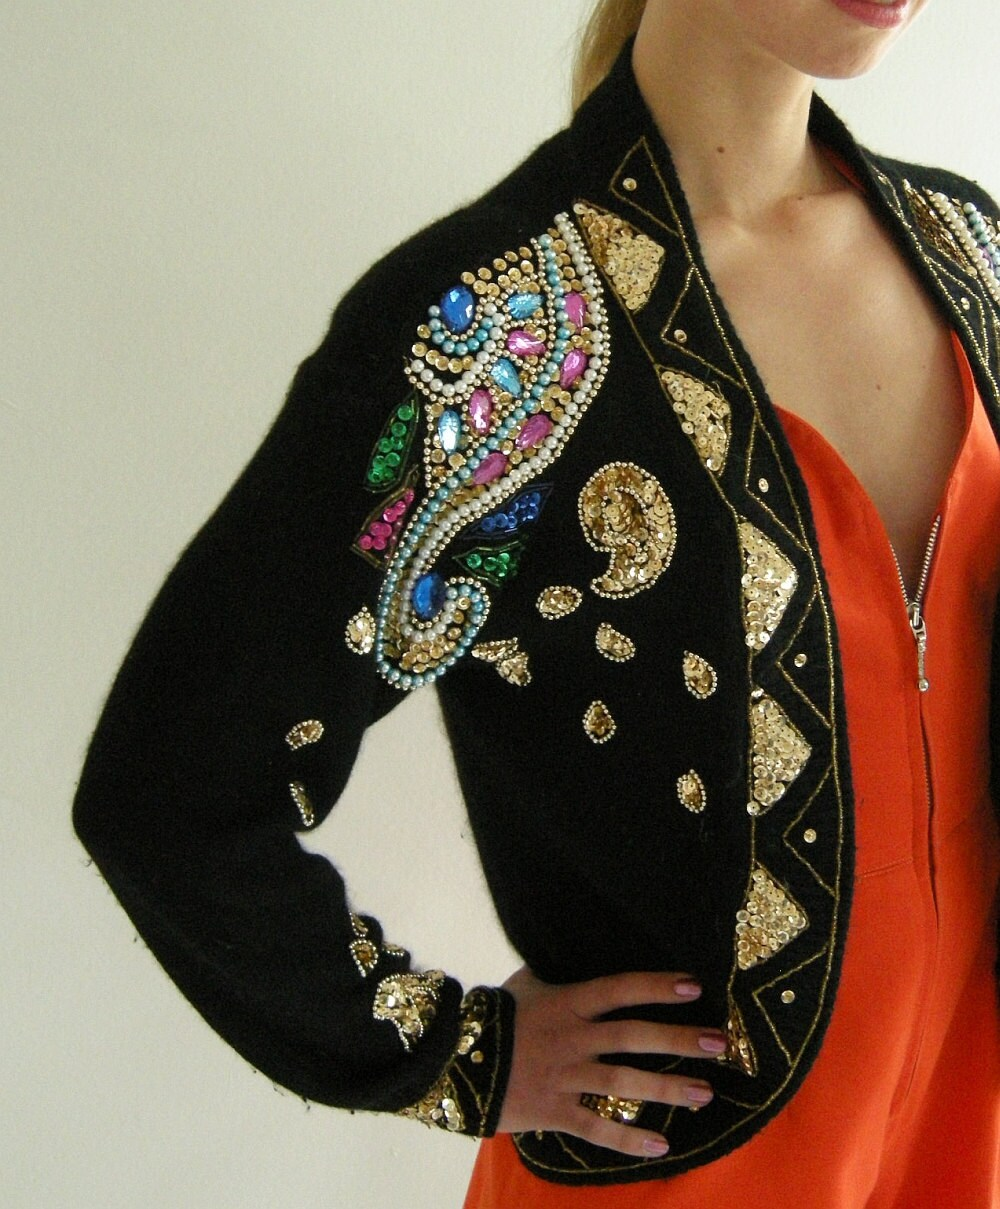 Beaded Black Silk Angora Vintage 80s Cardigan by empressjade from etsy.com